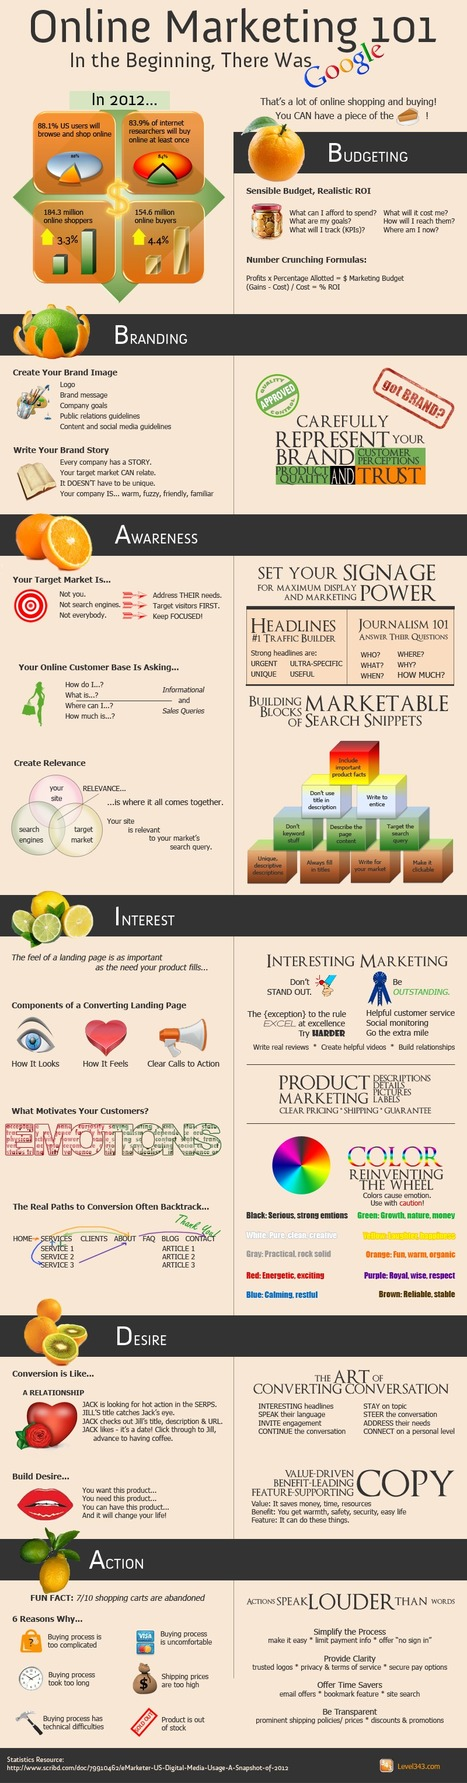 101 Online Marketing Tips Strategies from Google [INFOGRAPHIC] | Digital Marketing Buzz | Scoop.it